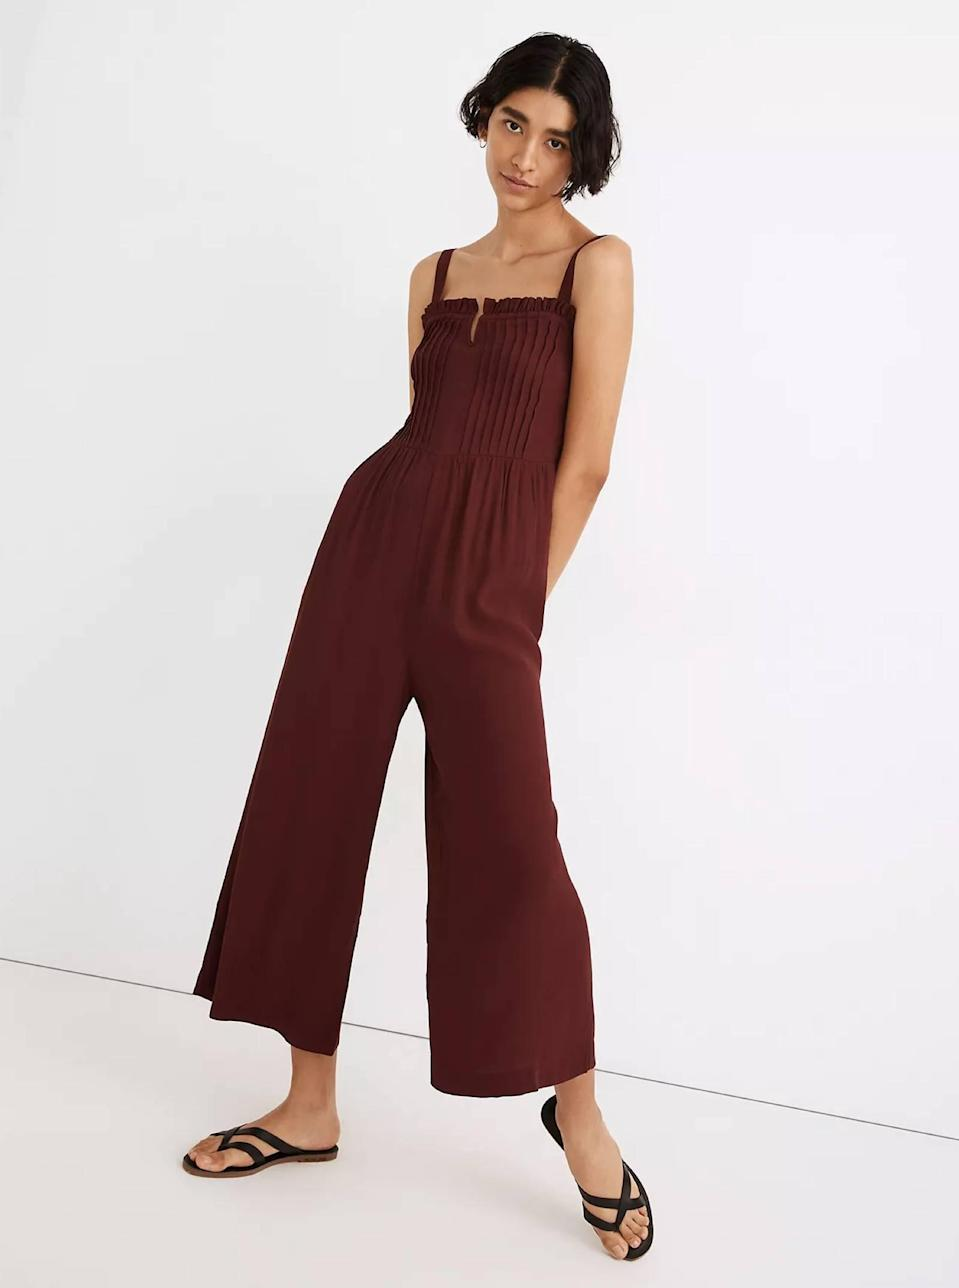 """There's no easier warm-weather outfit than a flowy jumper. Dress this one down with flat sandals or sneakers to run errands, or dress it up with heels and <a href=""""https://www.glamour.com/gallery/best-statement-earrings-under-50-dollars?mbid=synd_yahoo_rss"""" rel=""""nofollow noopener"""" target=""""_blank"""" data-ylk=""""slk:statement earrings"""" class=""""link rapid-noclick-resp"""">statement earrings</a>. $138, Madewell. <a href=""""https://www.madewell.com/pintuck-cami-jumpsuit-MA197.html?"""" rel=""""nofollow noopener"""" target=""""_blank"""" data-ylk=""""slk:Get it now!"""" class=""""link rapid-noclick-resp"""">Get it now!</a>"""